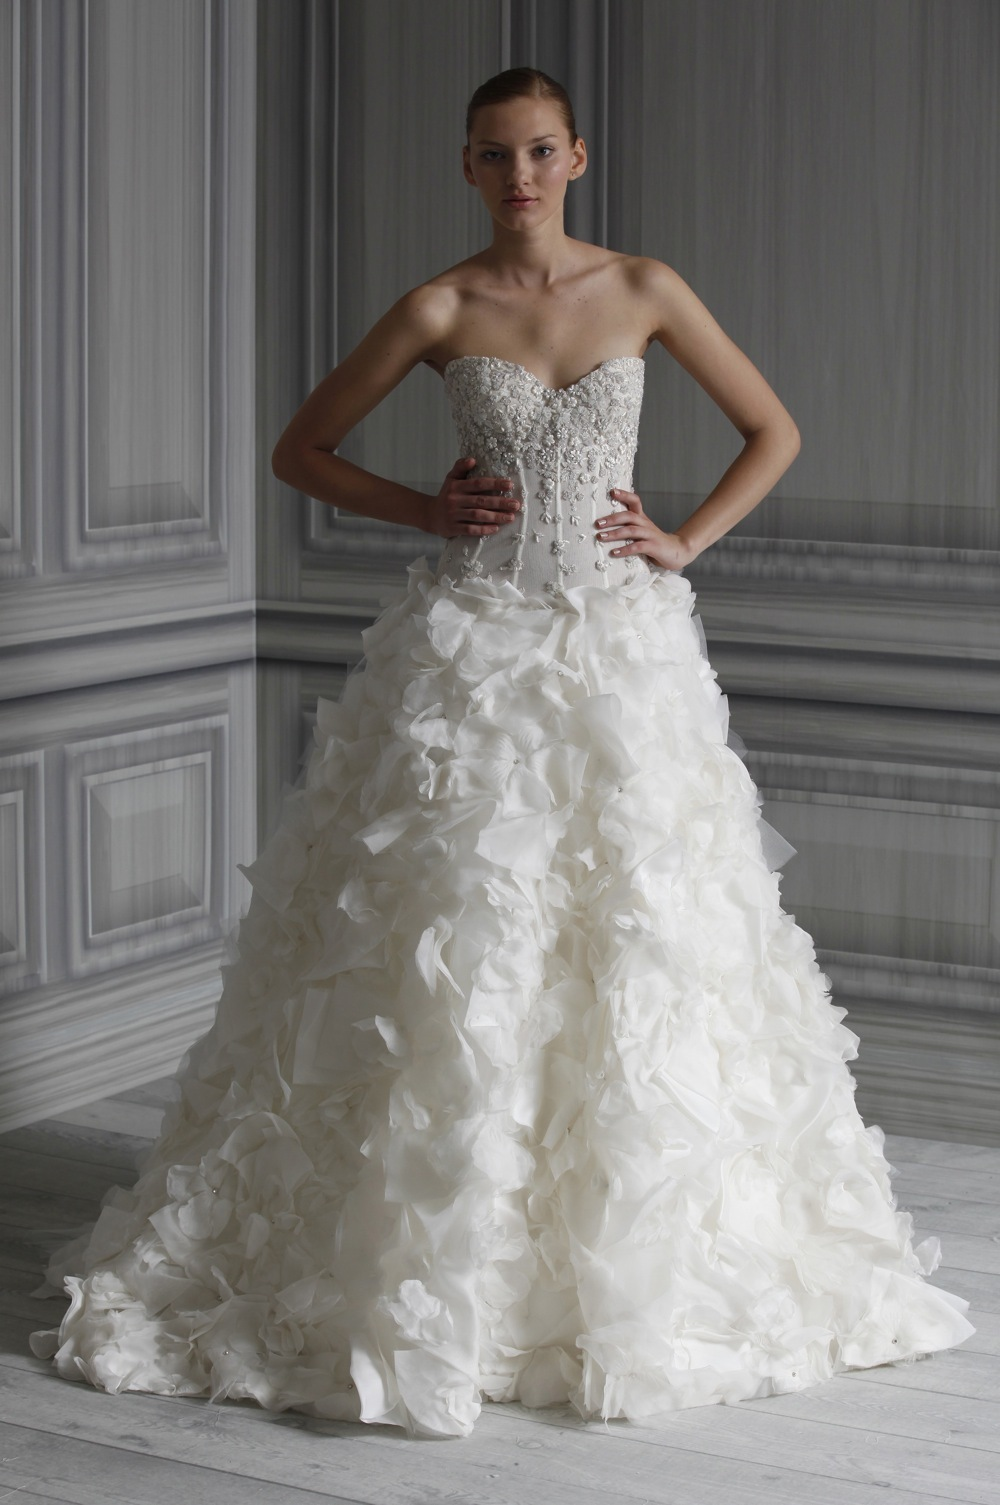 wedding-dress-monique-lhuillier-bridal-gowns-spring-2012-orchid.full.jpg